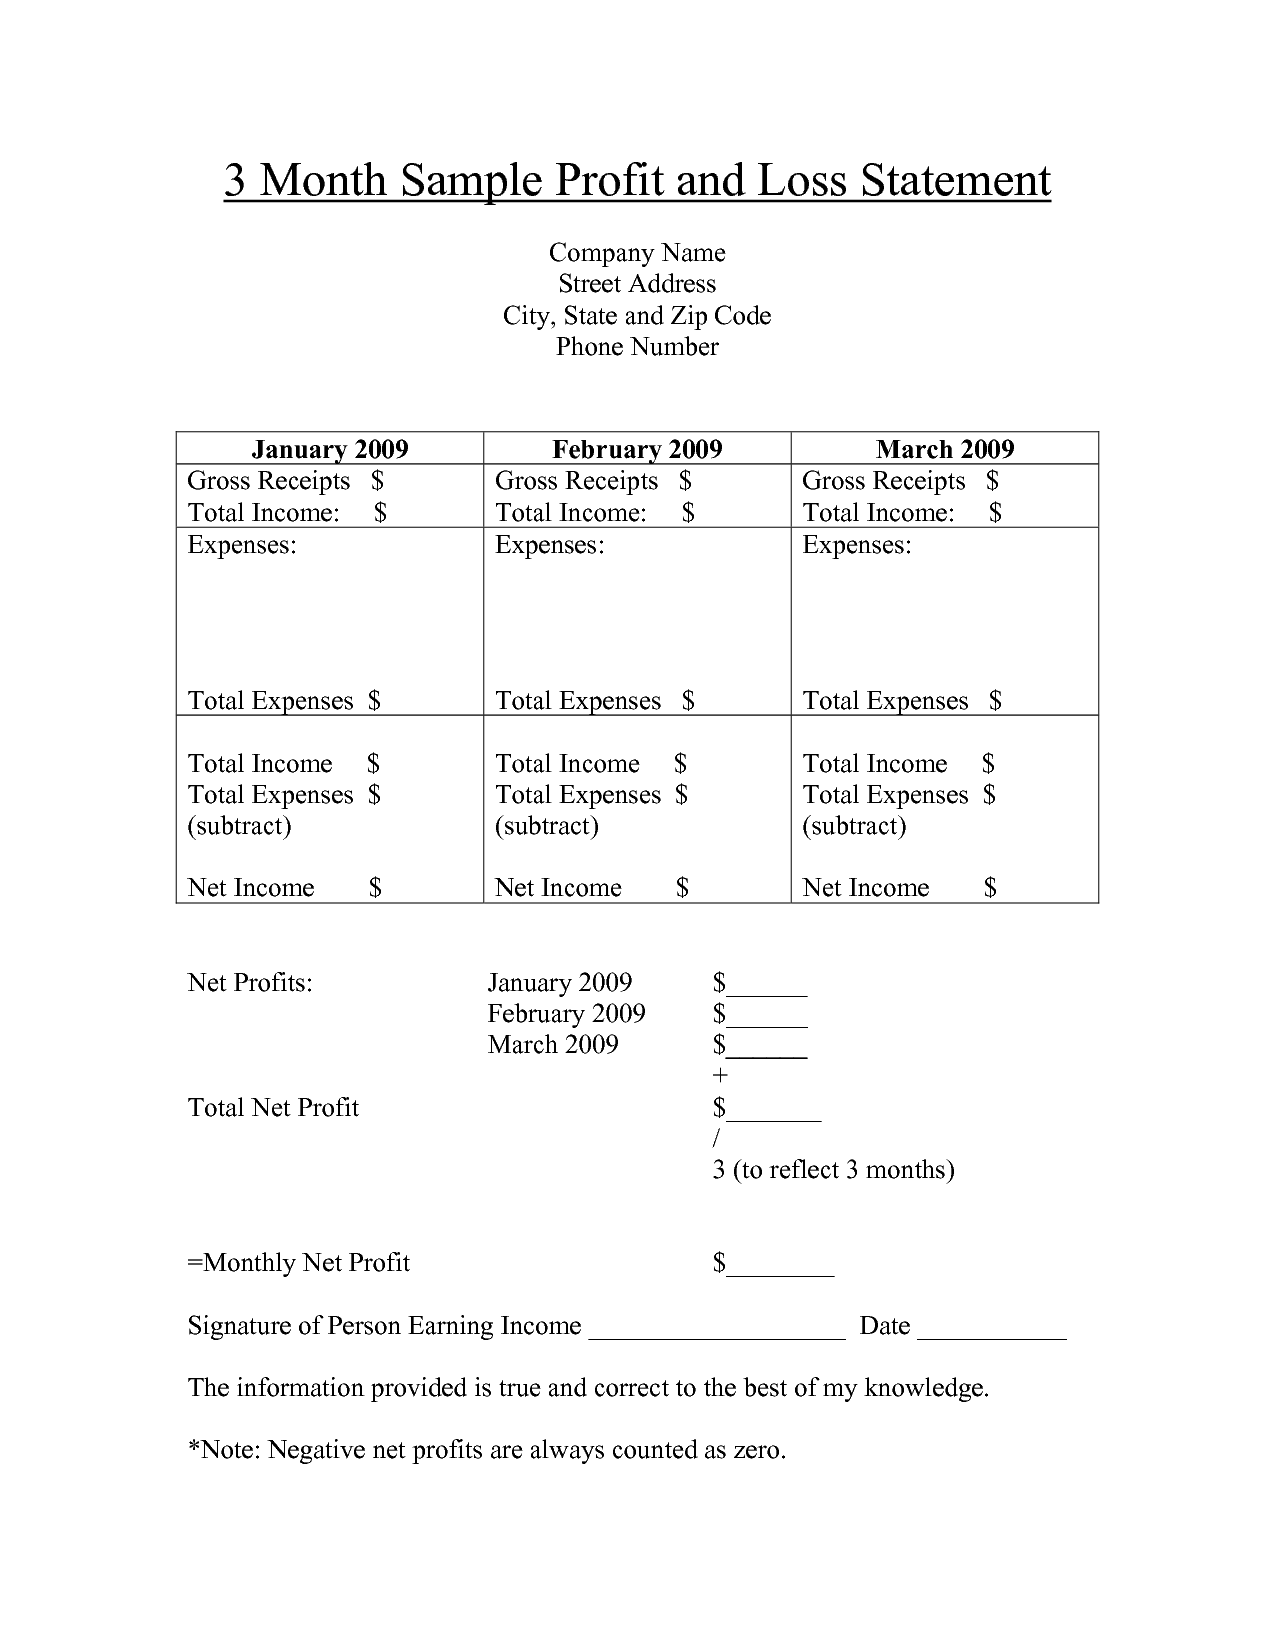 Free Printable Profit and Loss Statement Form for Home Care Bing – Profit and Loss Statement Form Free